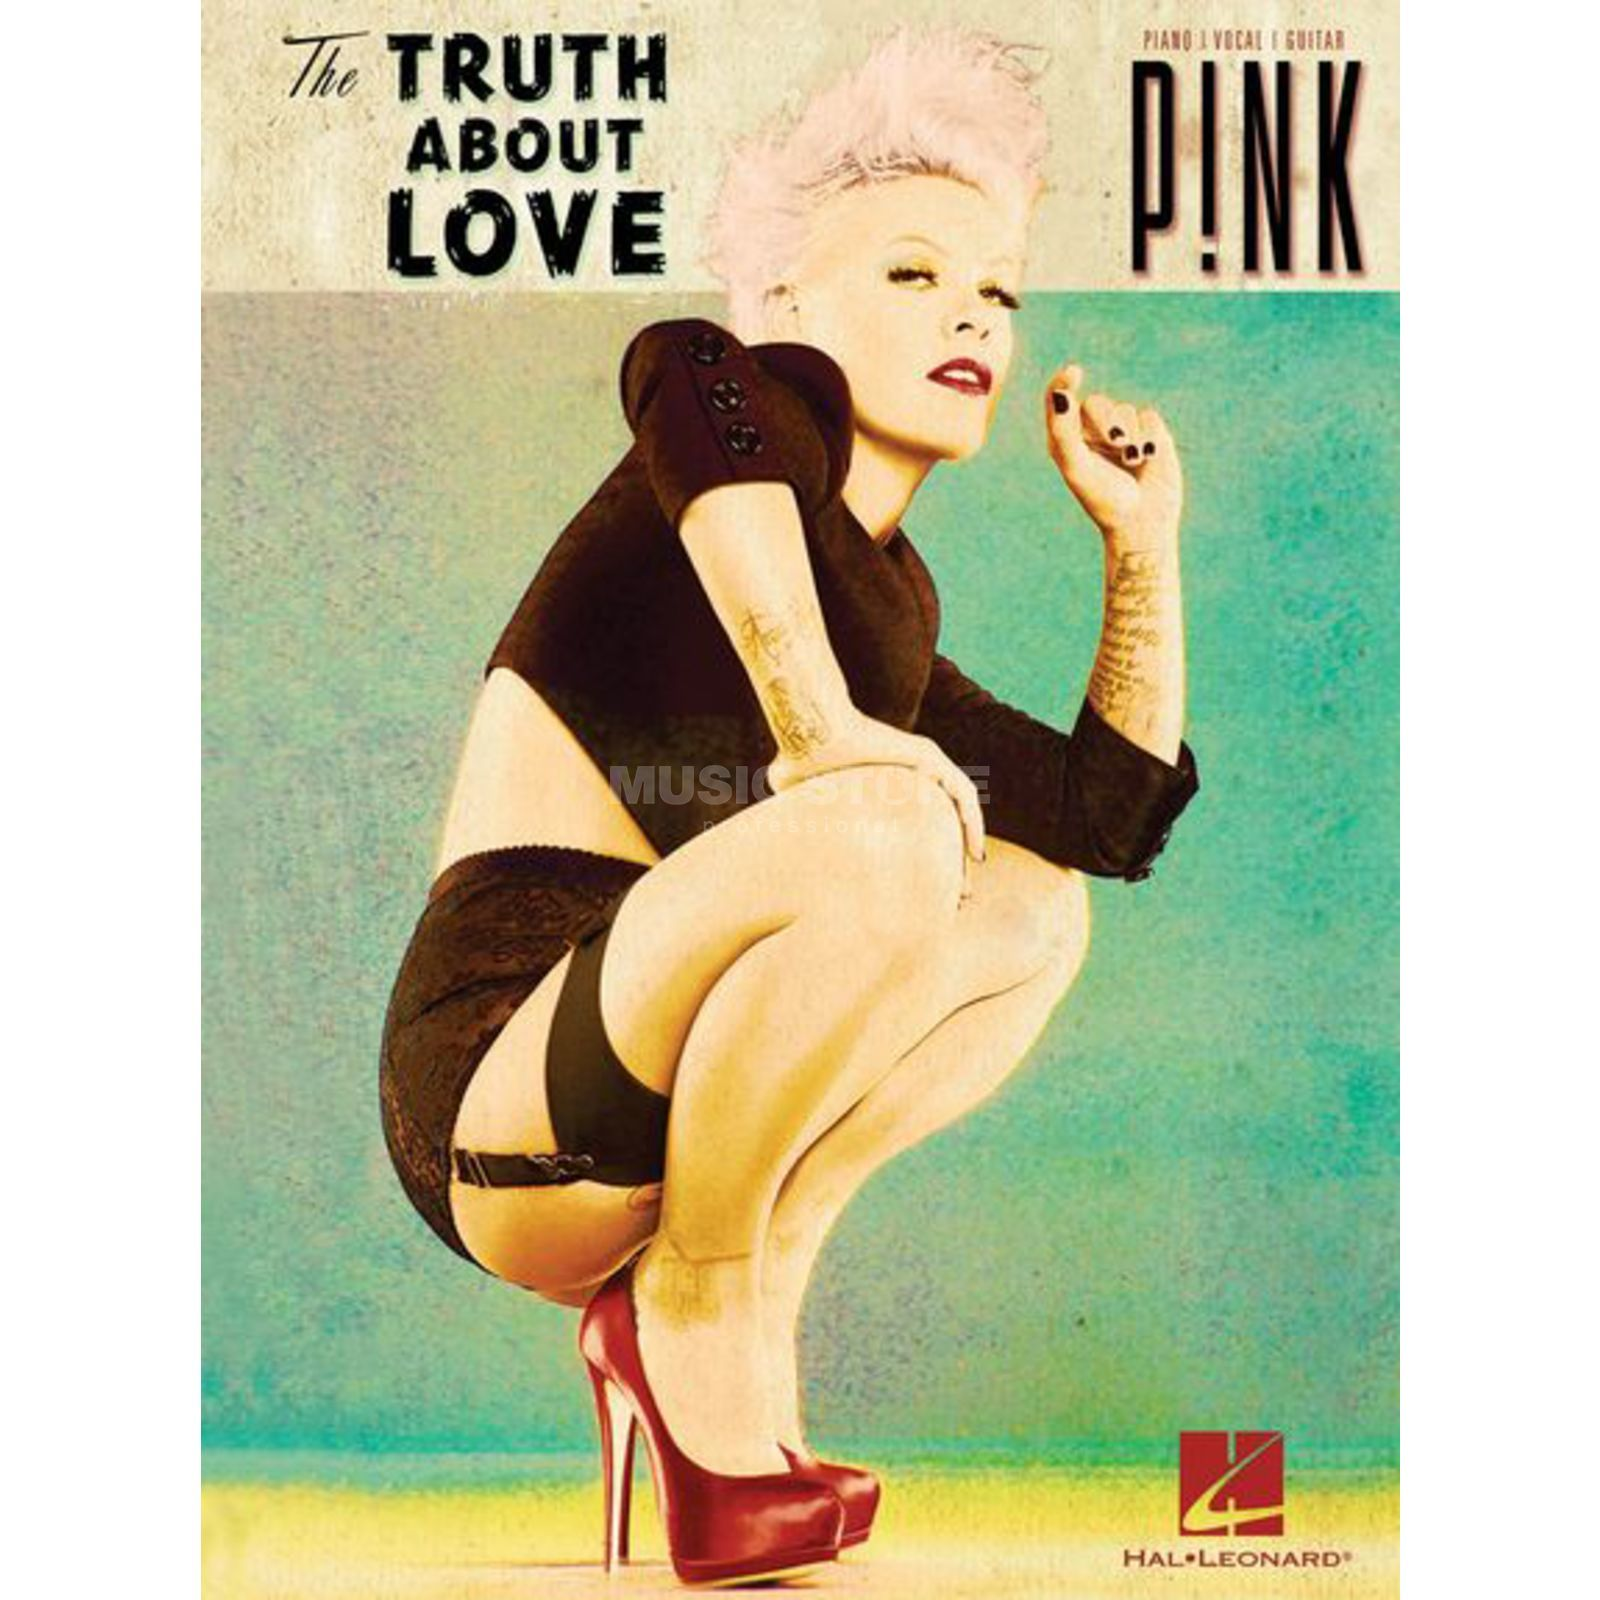 Hal Leonard Pink: The Truth About Love Produktbild